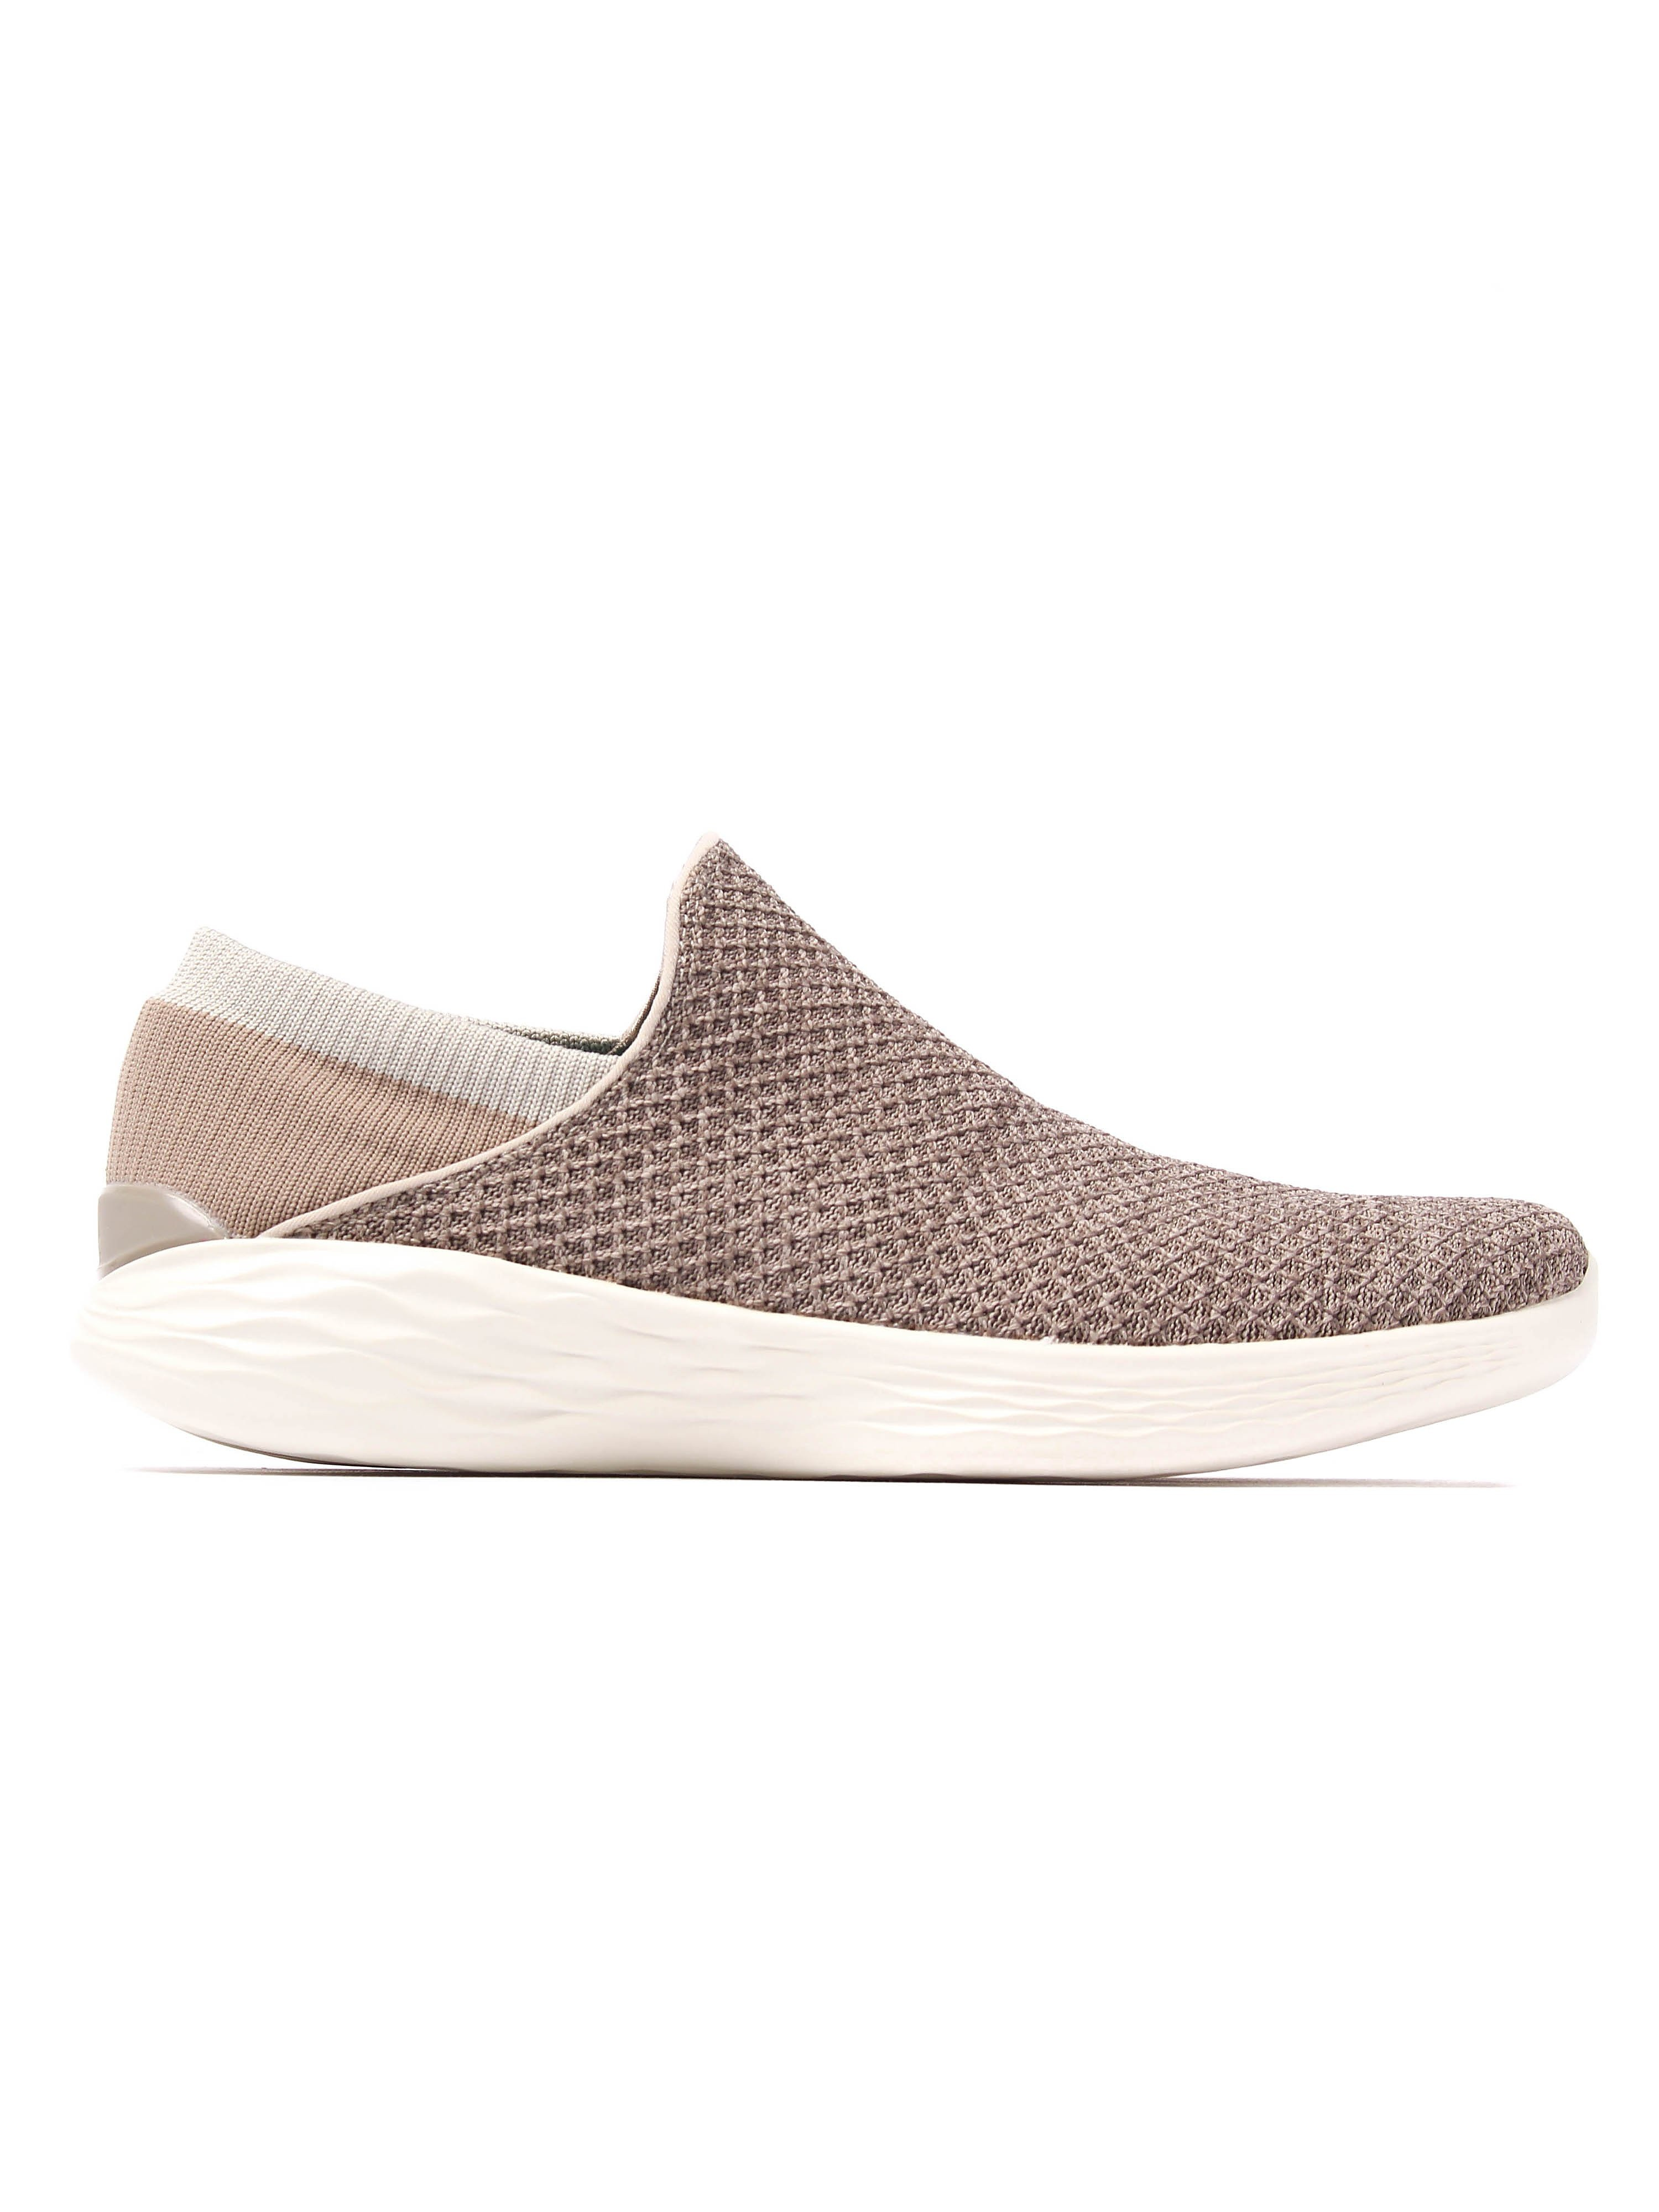 Skechers Women's You Trainers - Taupe